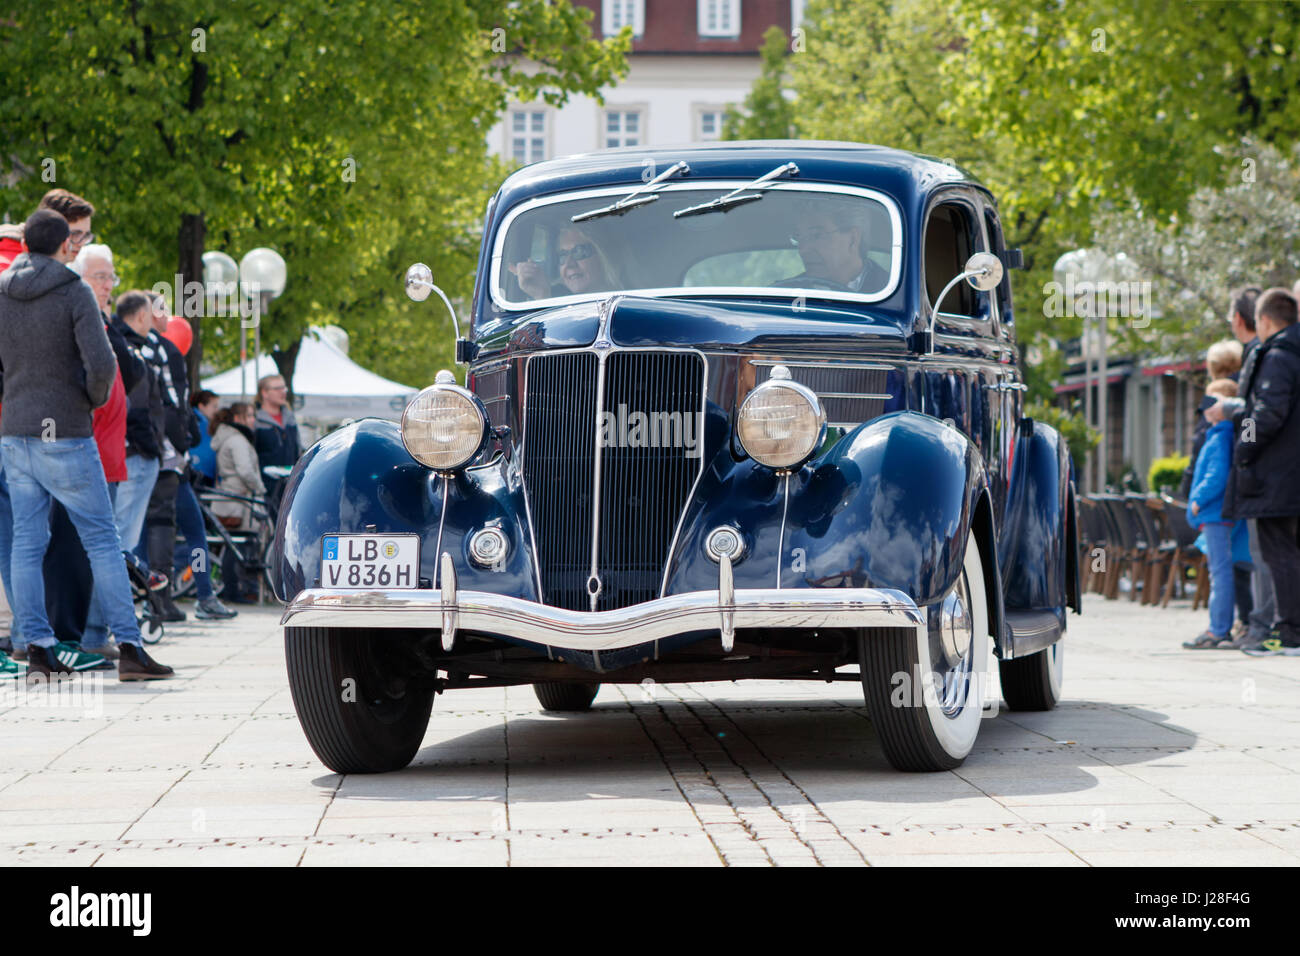 LUDWIGSBURG, GERMANY - APRIL 23, 2017: Ford oldtimer car at the eMotionen event on April 23, 2017 in Ludwigsburg, - Stock Image